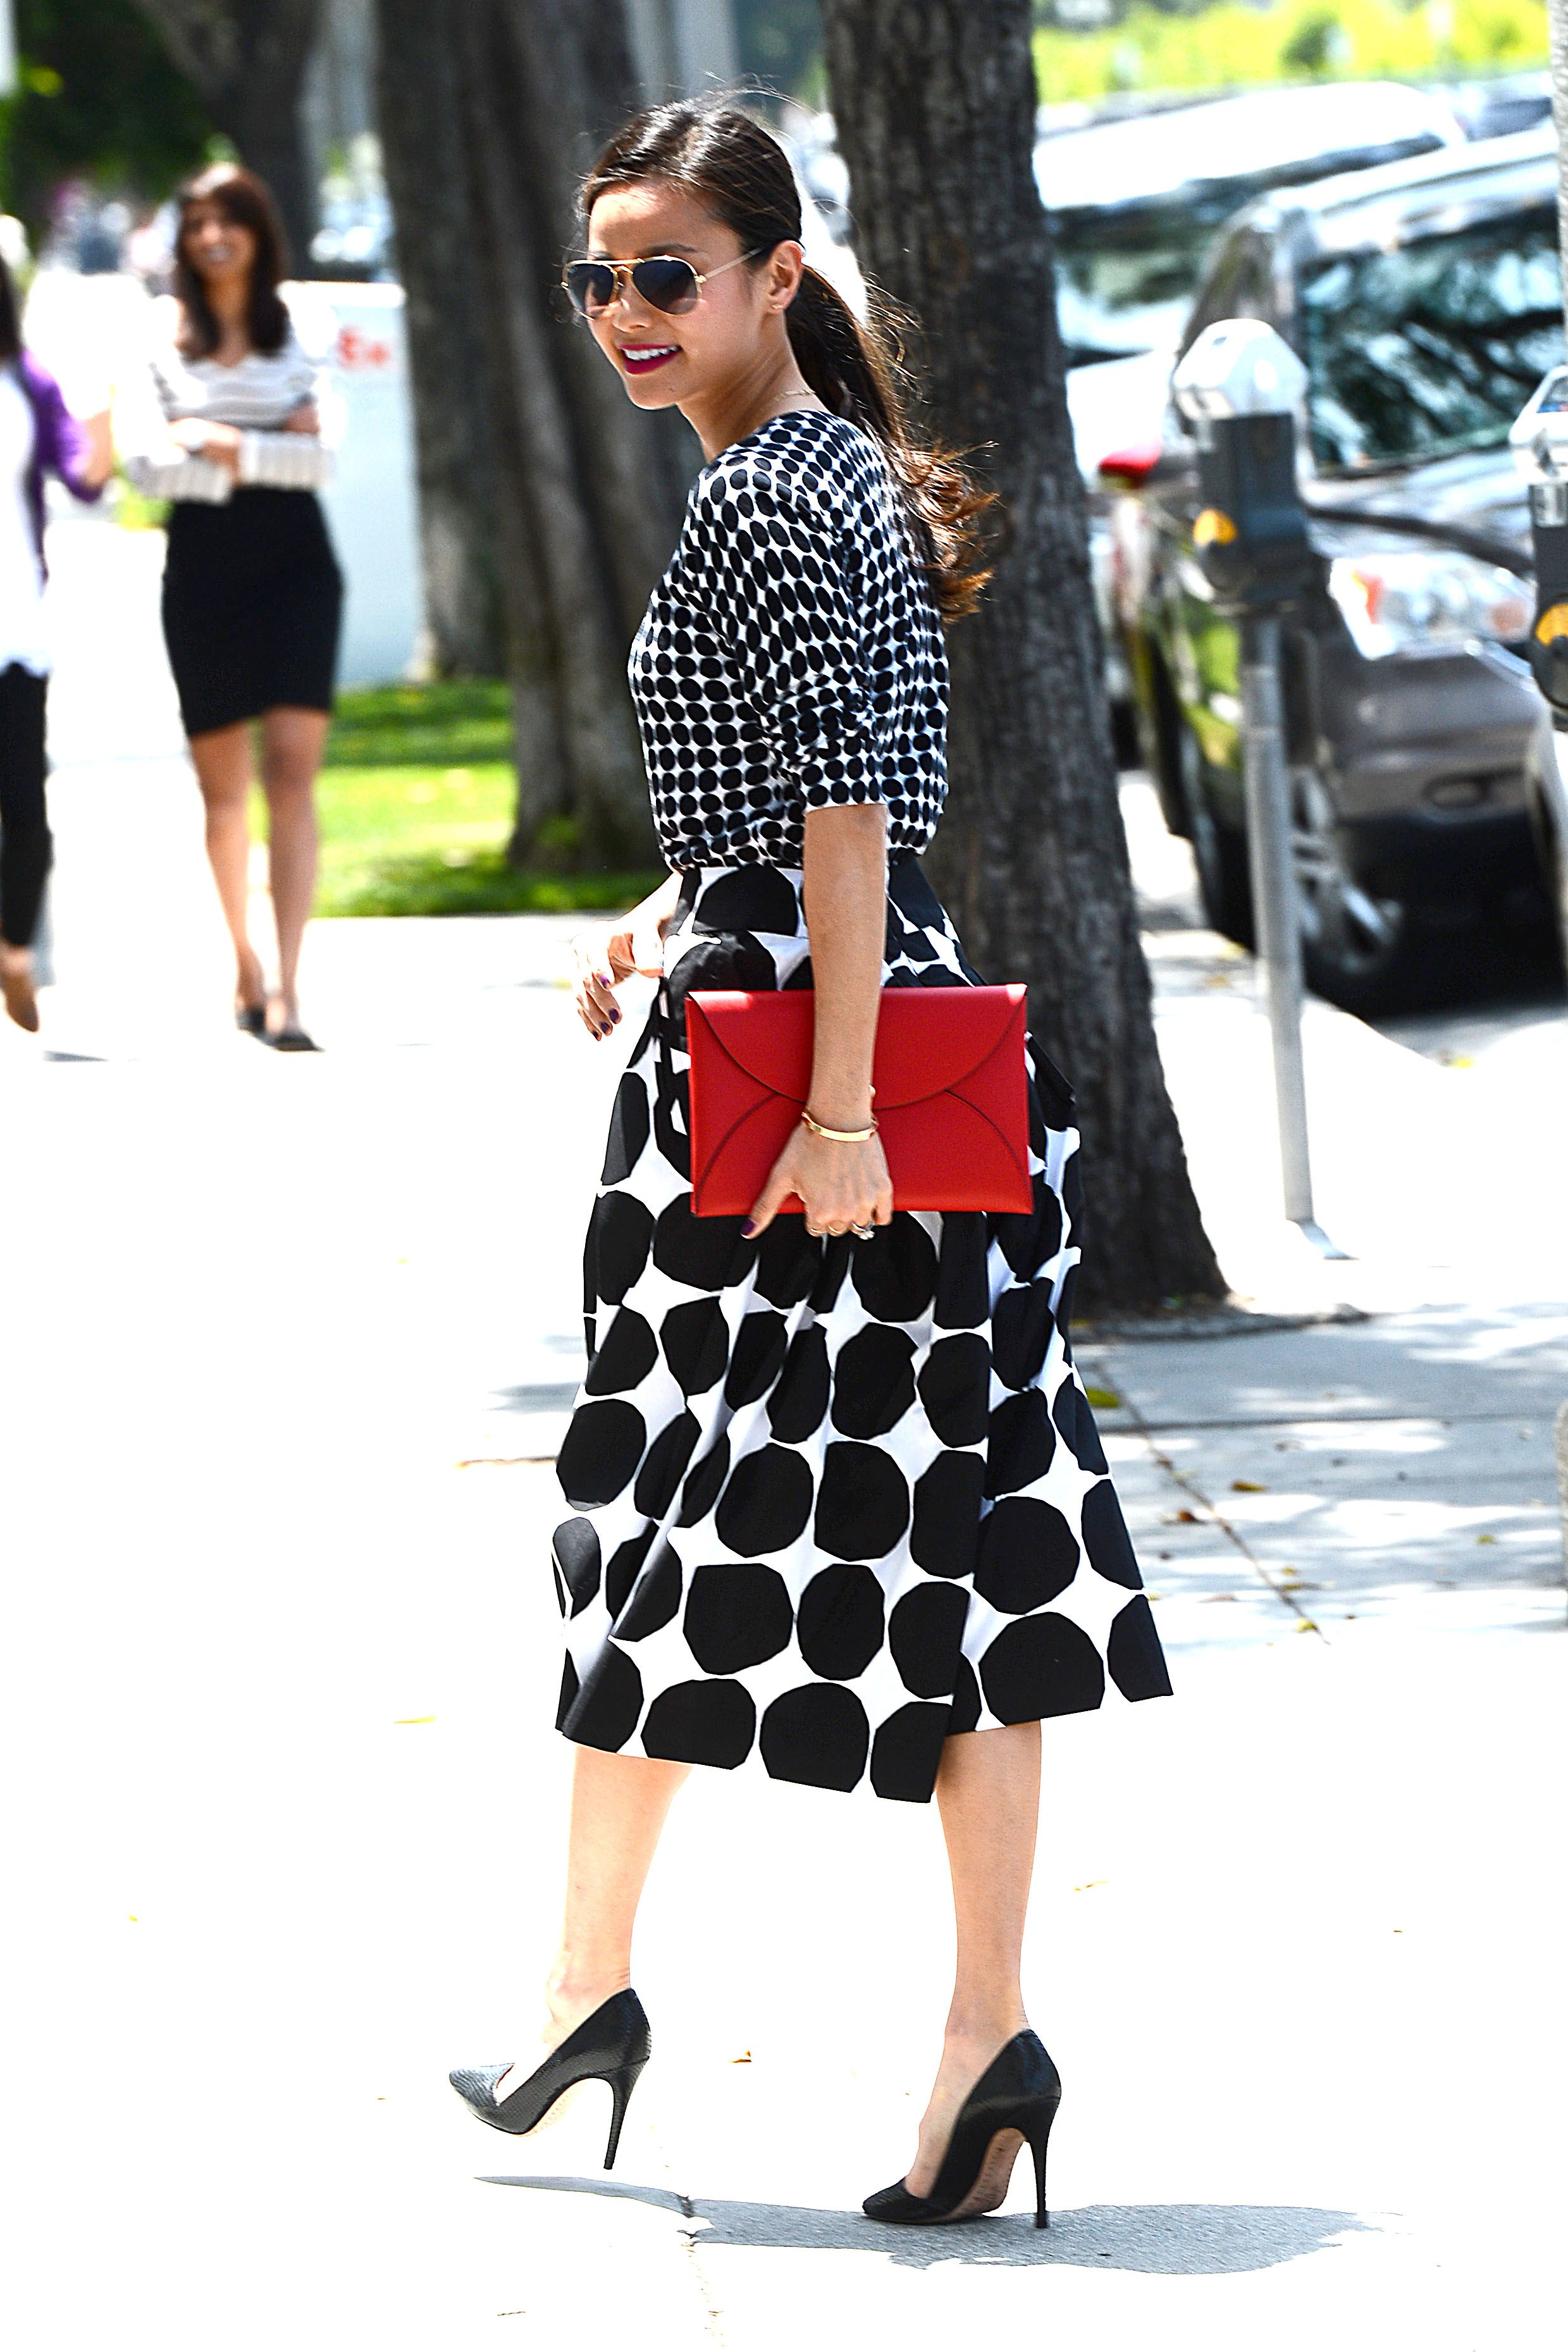 Jamie Chung spotted in Banana Republic x Marimekko midi skirt and sweater.